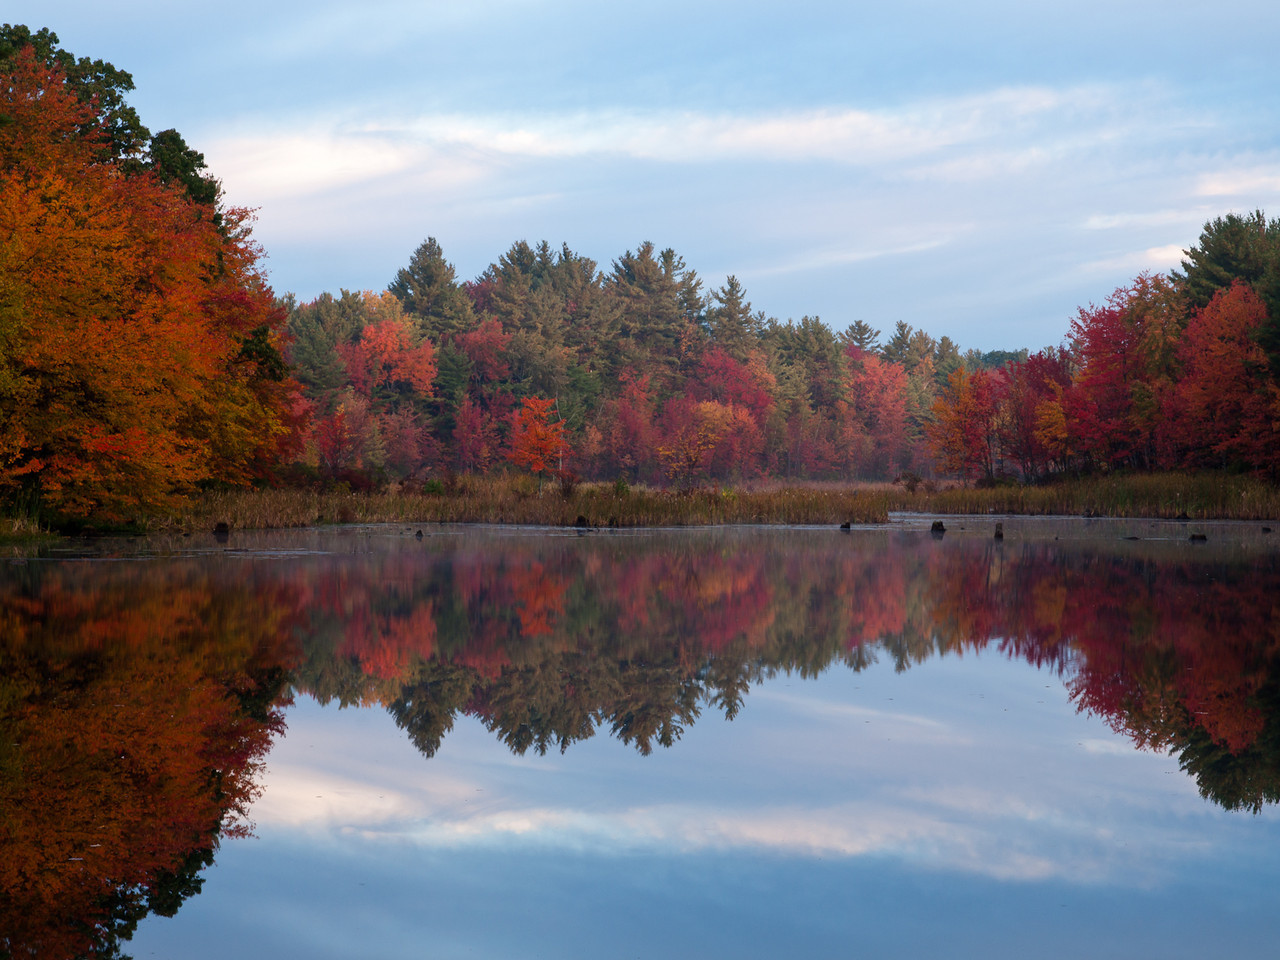 Another slice of Adam's pond from this morning.  The colors in the trees at the marshy end are really something!